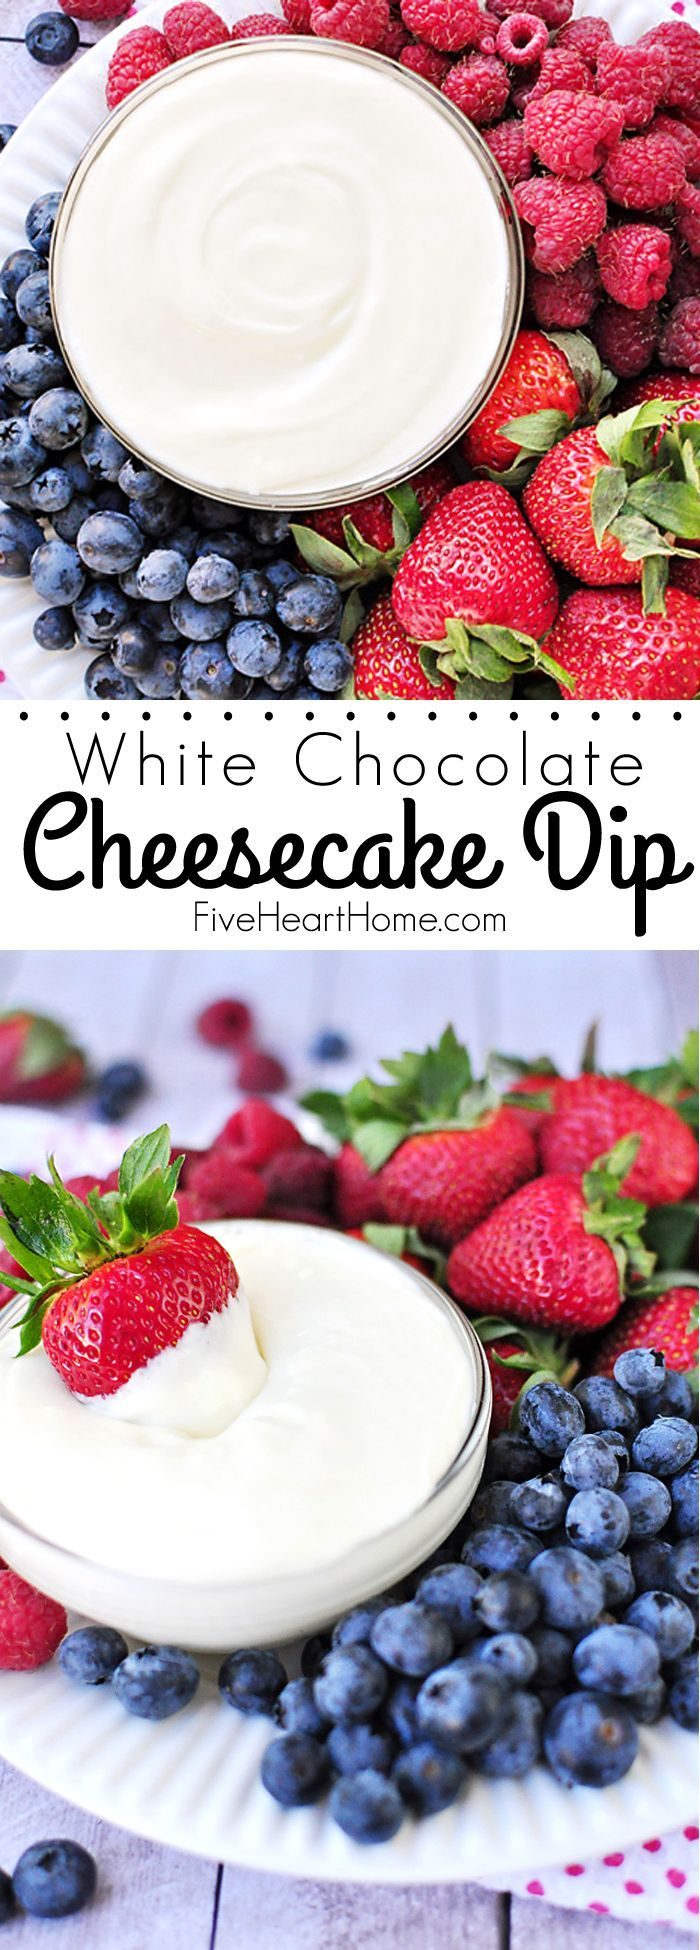 White Chocolate Cheesecake Fruit Dip ~ quick to make and quicker to disappear, this will become your new favorite fruit dip! | FiveHeartHome.com (Chocolate Cheesecake Frosting)